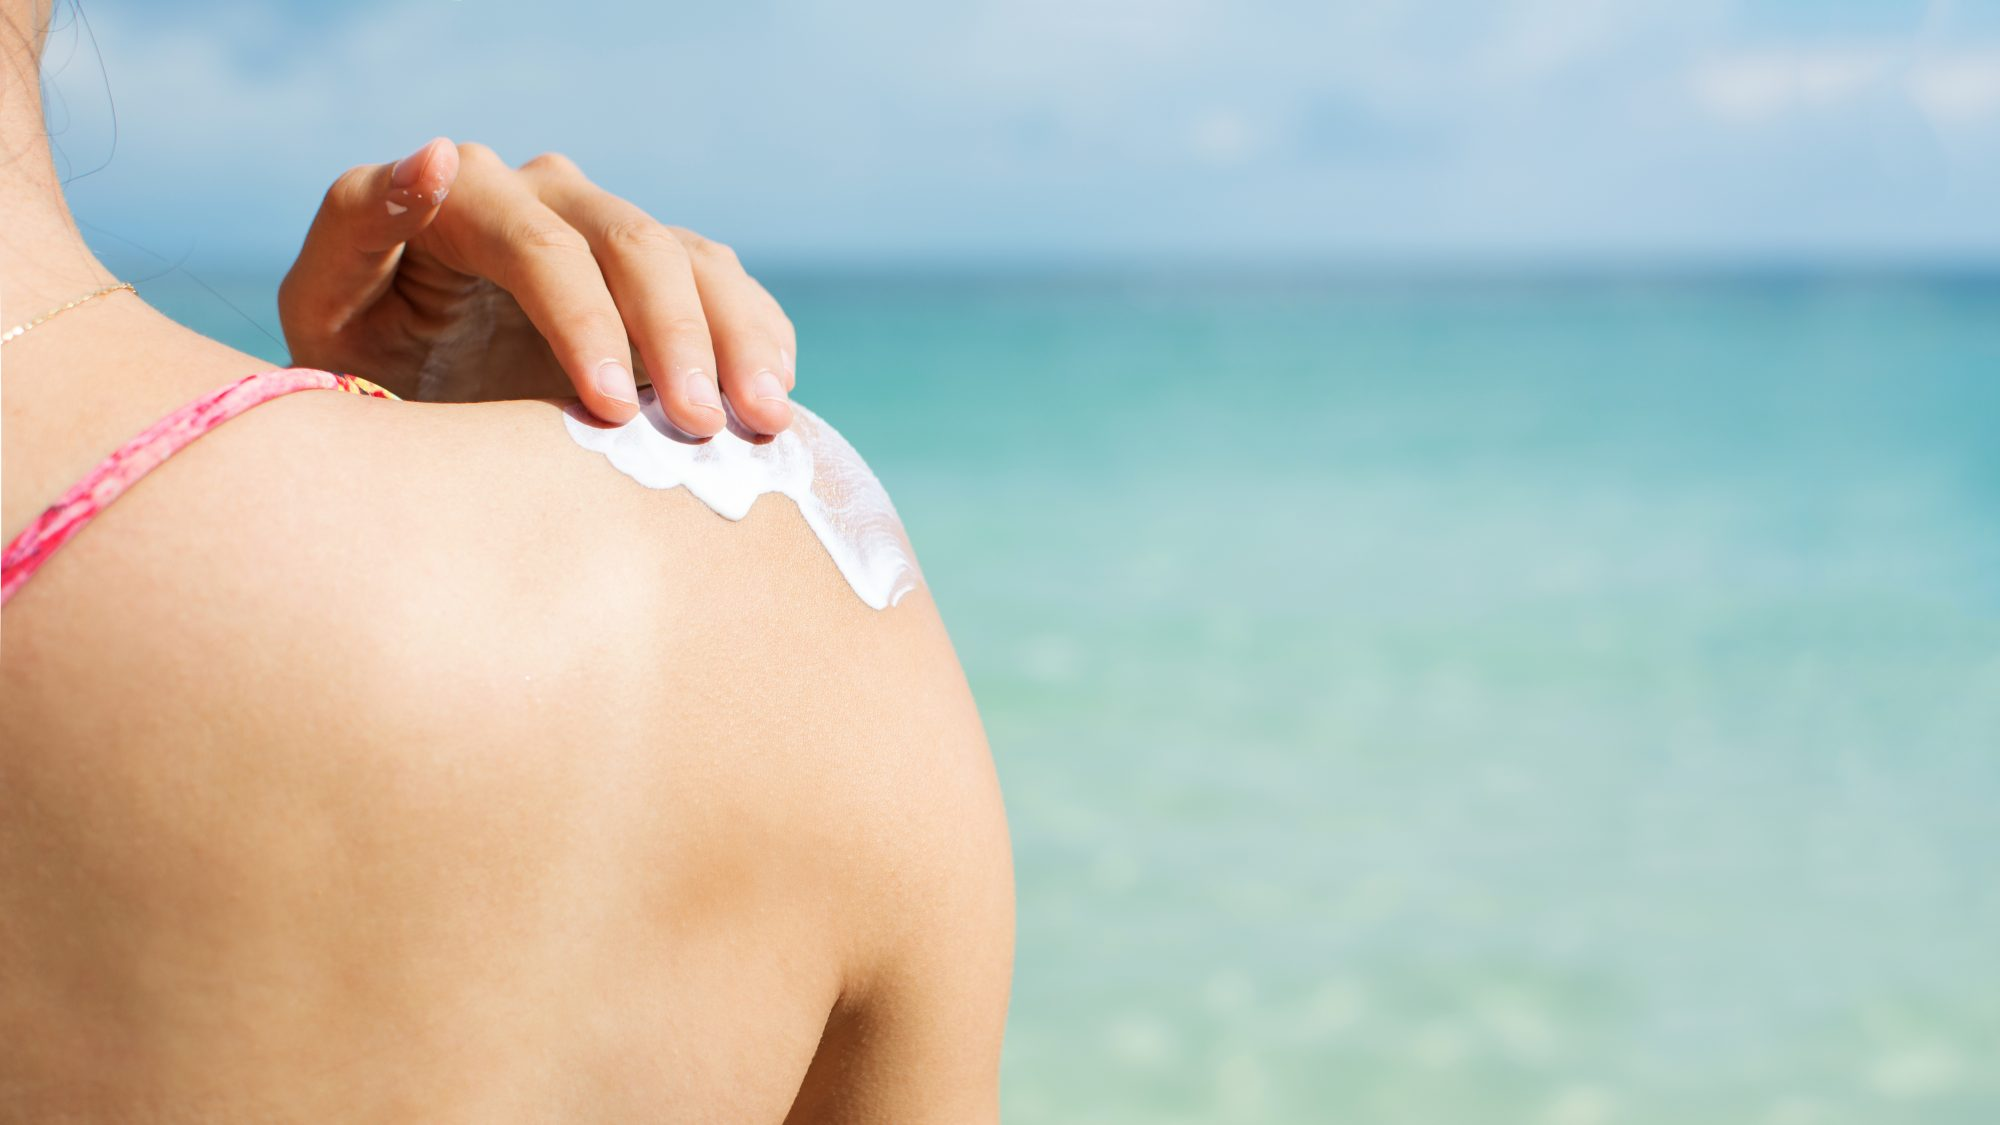 Is Sunscreen Bad for Your Skin?